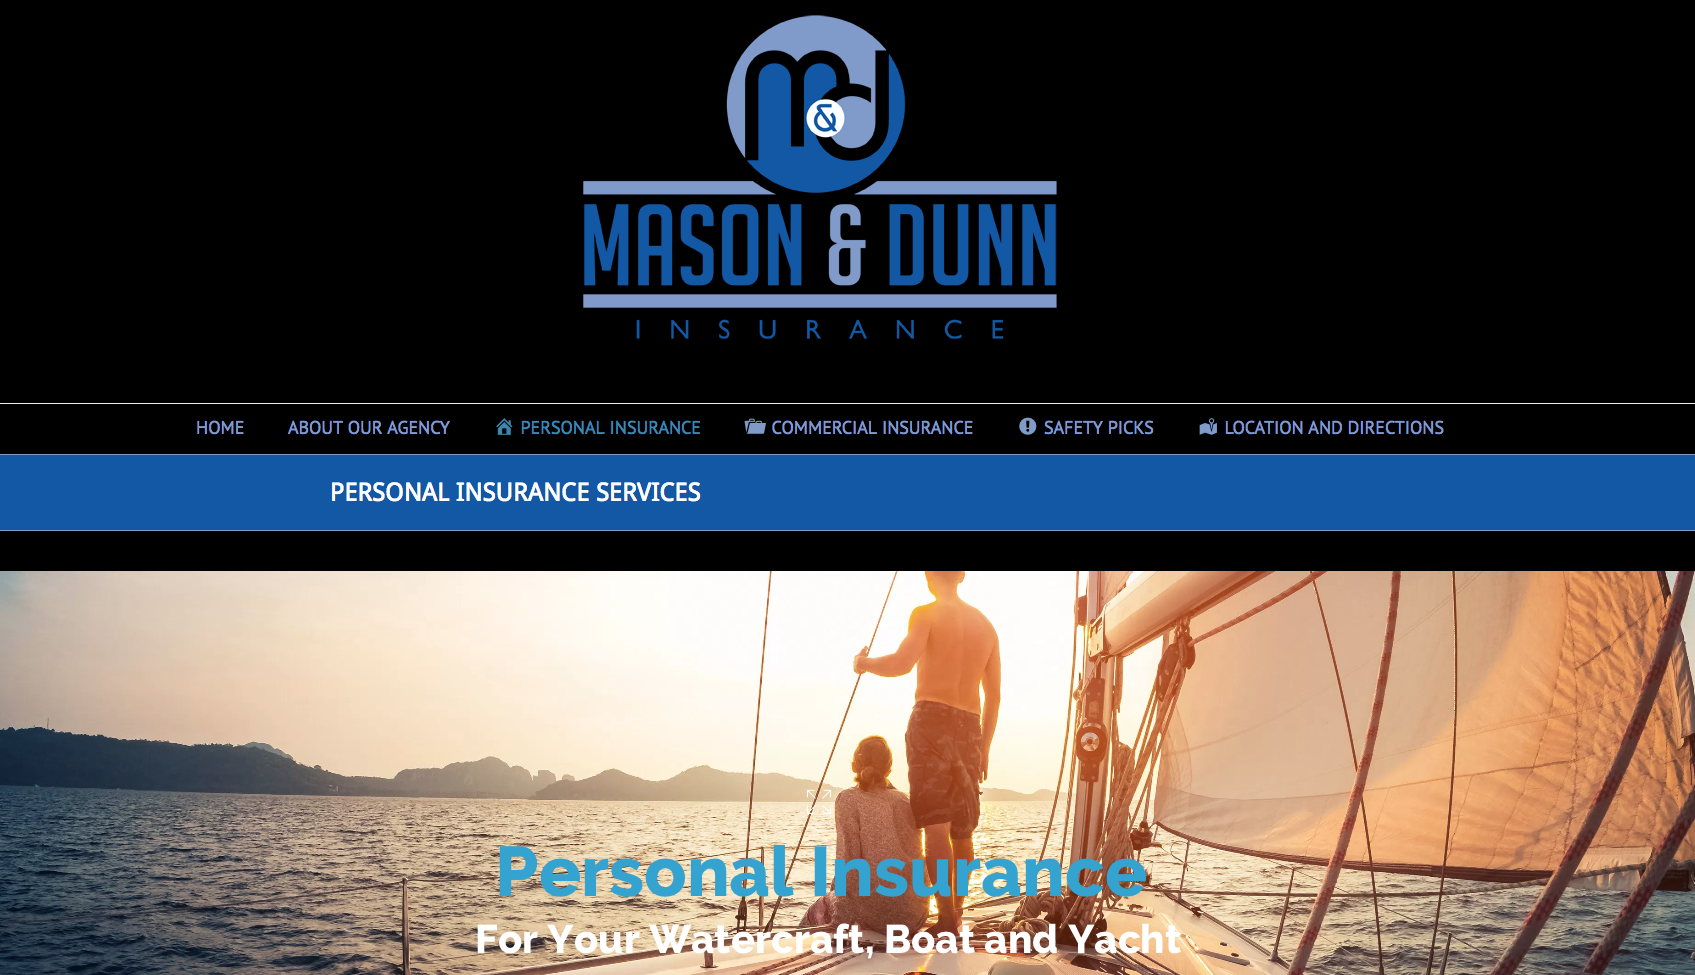 Mason and Dunn Insurance Agency